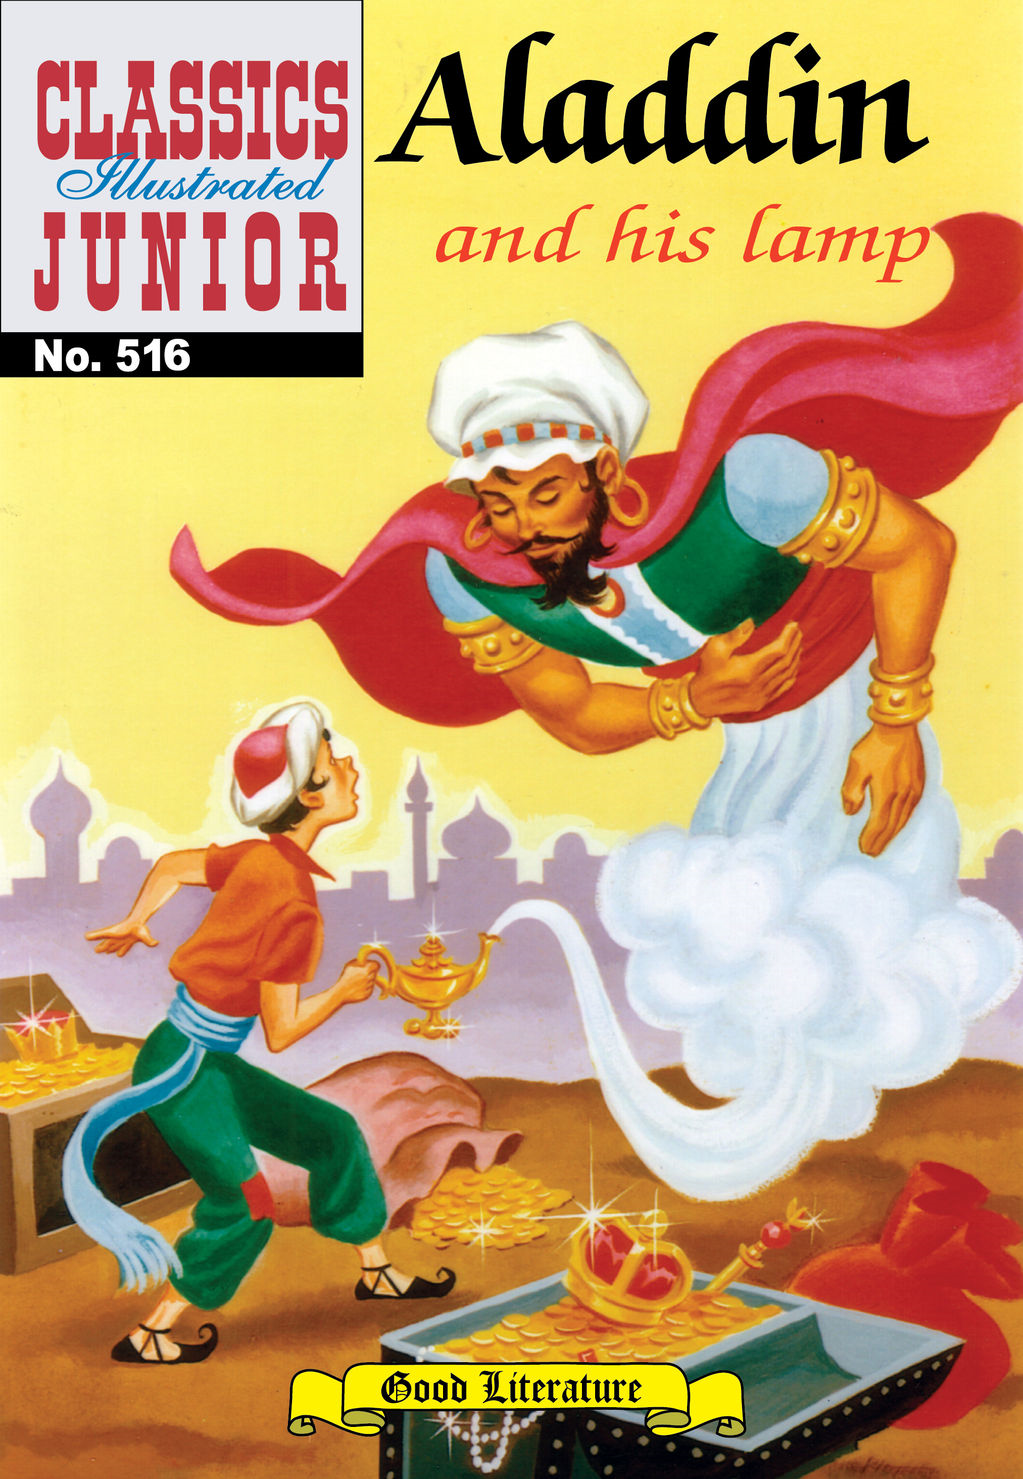 Aladdin and his Lamp - Classics Illustrated Junior #516